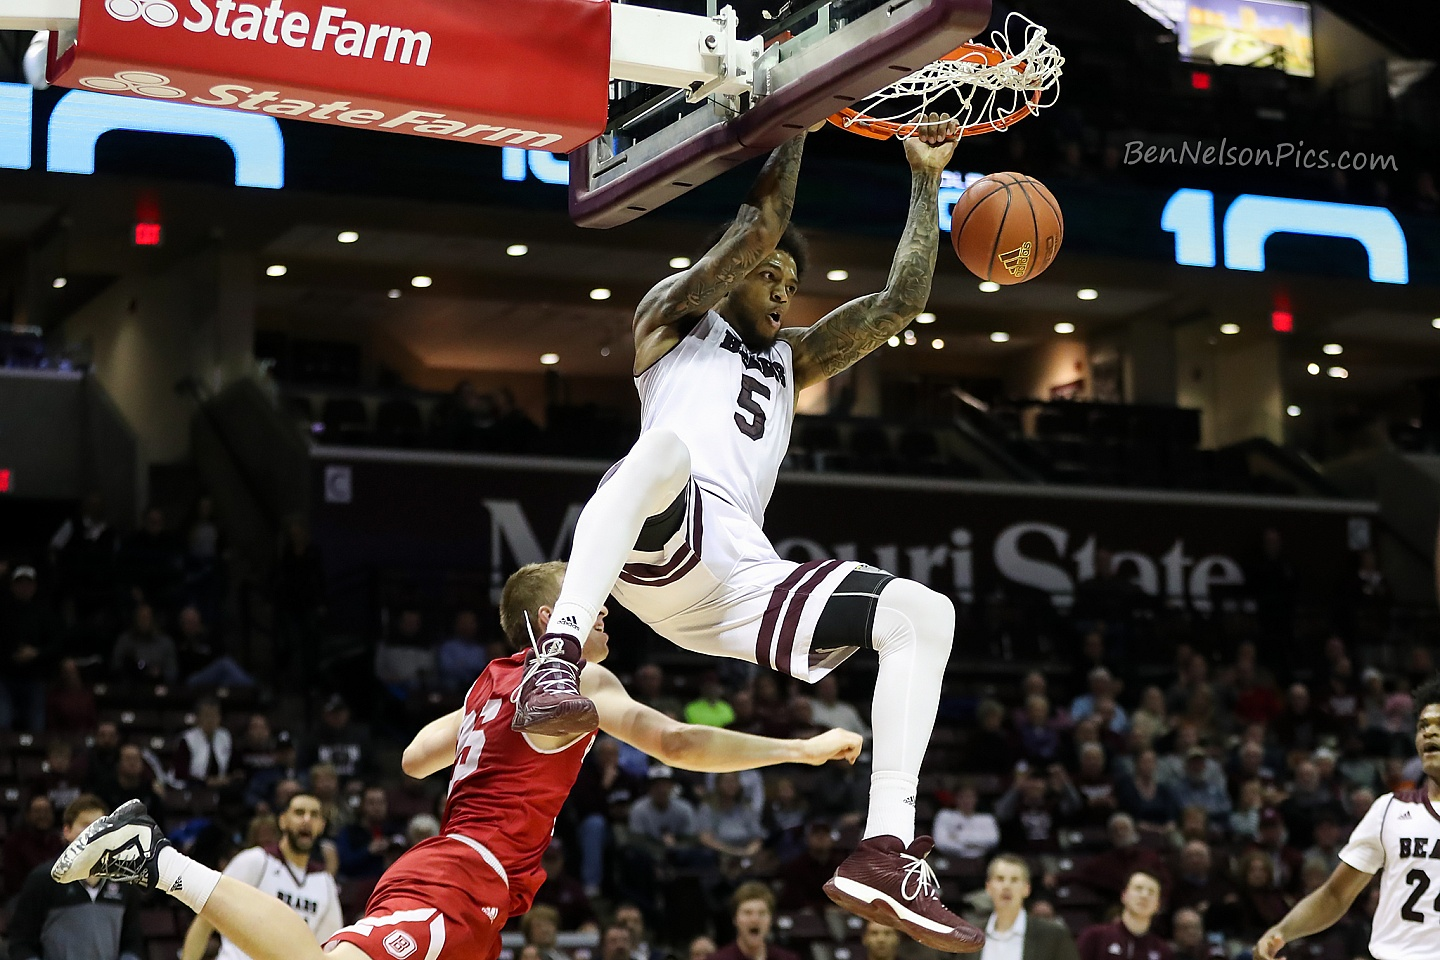 Missouri State Bears Basketball 2017-2018  - Obediah Church Dunks over a Bradley player 2018 MVC Play at JQH Arena